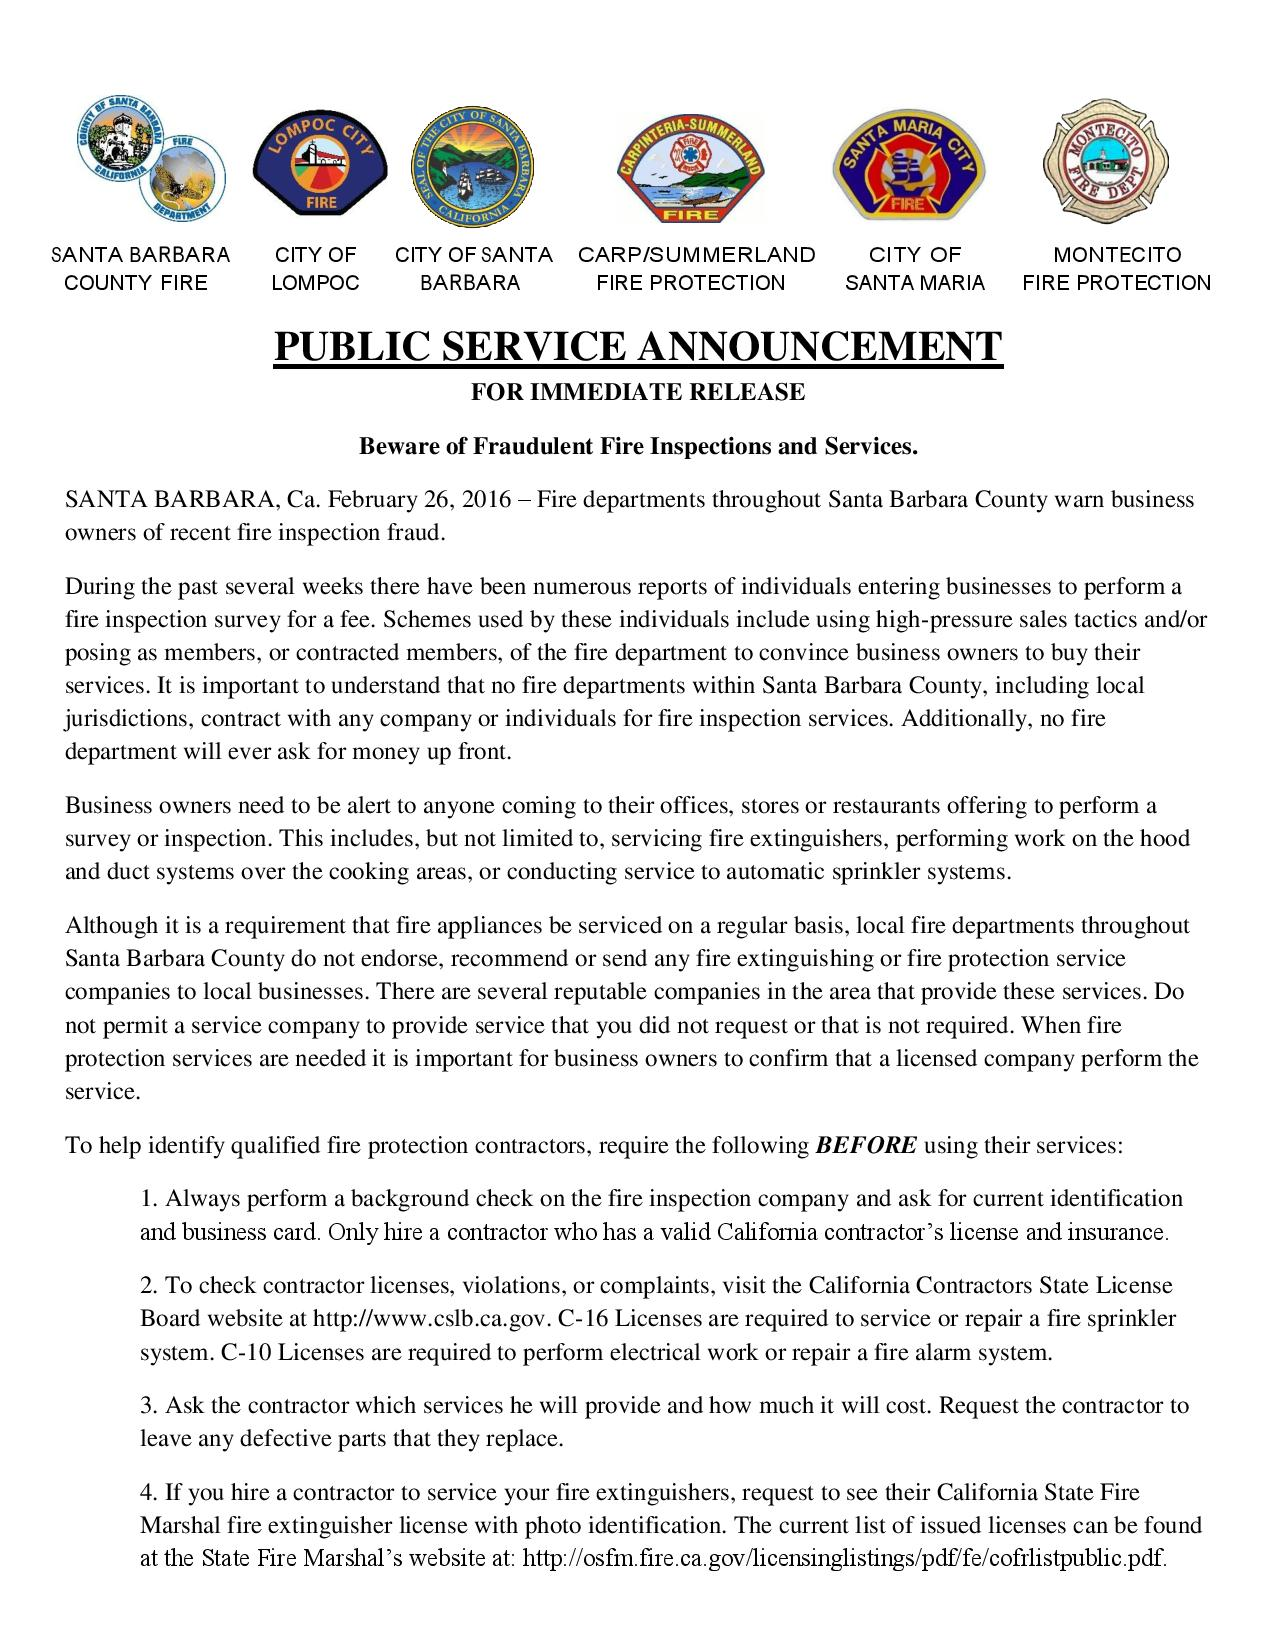 Beware of Fraudulent Fire Inspections and Services-pg1